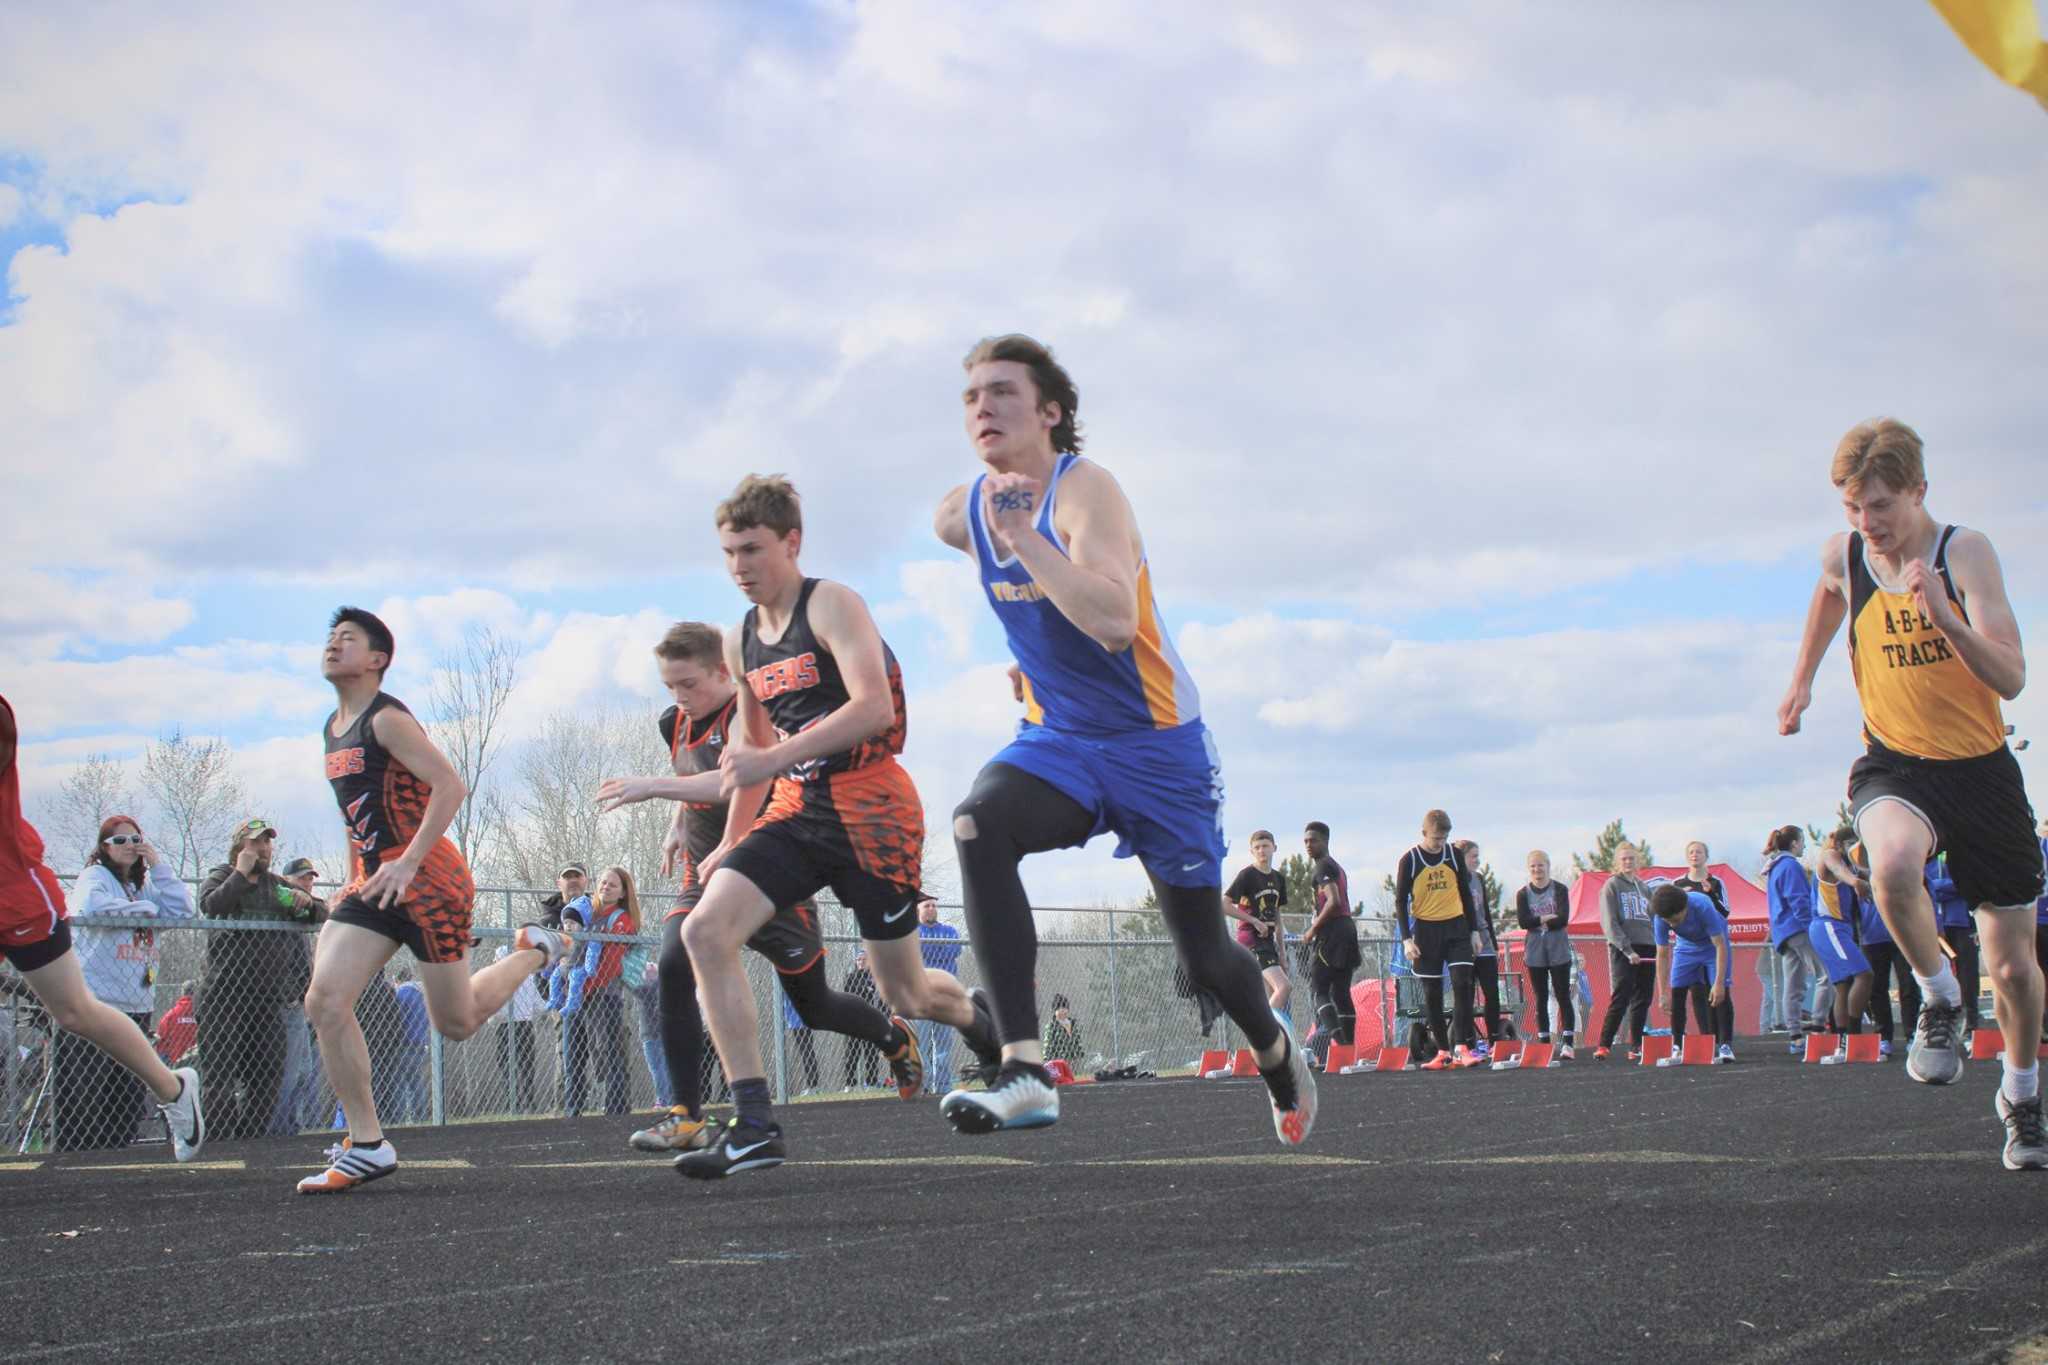 Hawkins (in blue and gold) returning to track last week where he competed in the Sam Kelderman Memorial Meet in the 100-meter dash (above). He ended up 4th overall with a time of 11.66 — an amazing time! Photo by Chelsey Jo Dagen, WDC Schools.